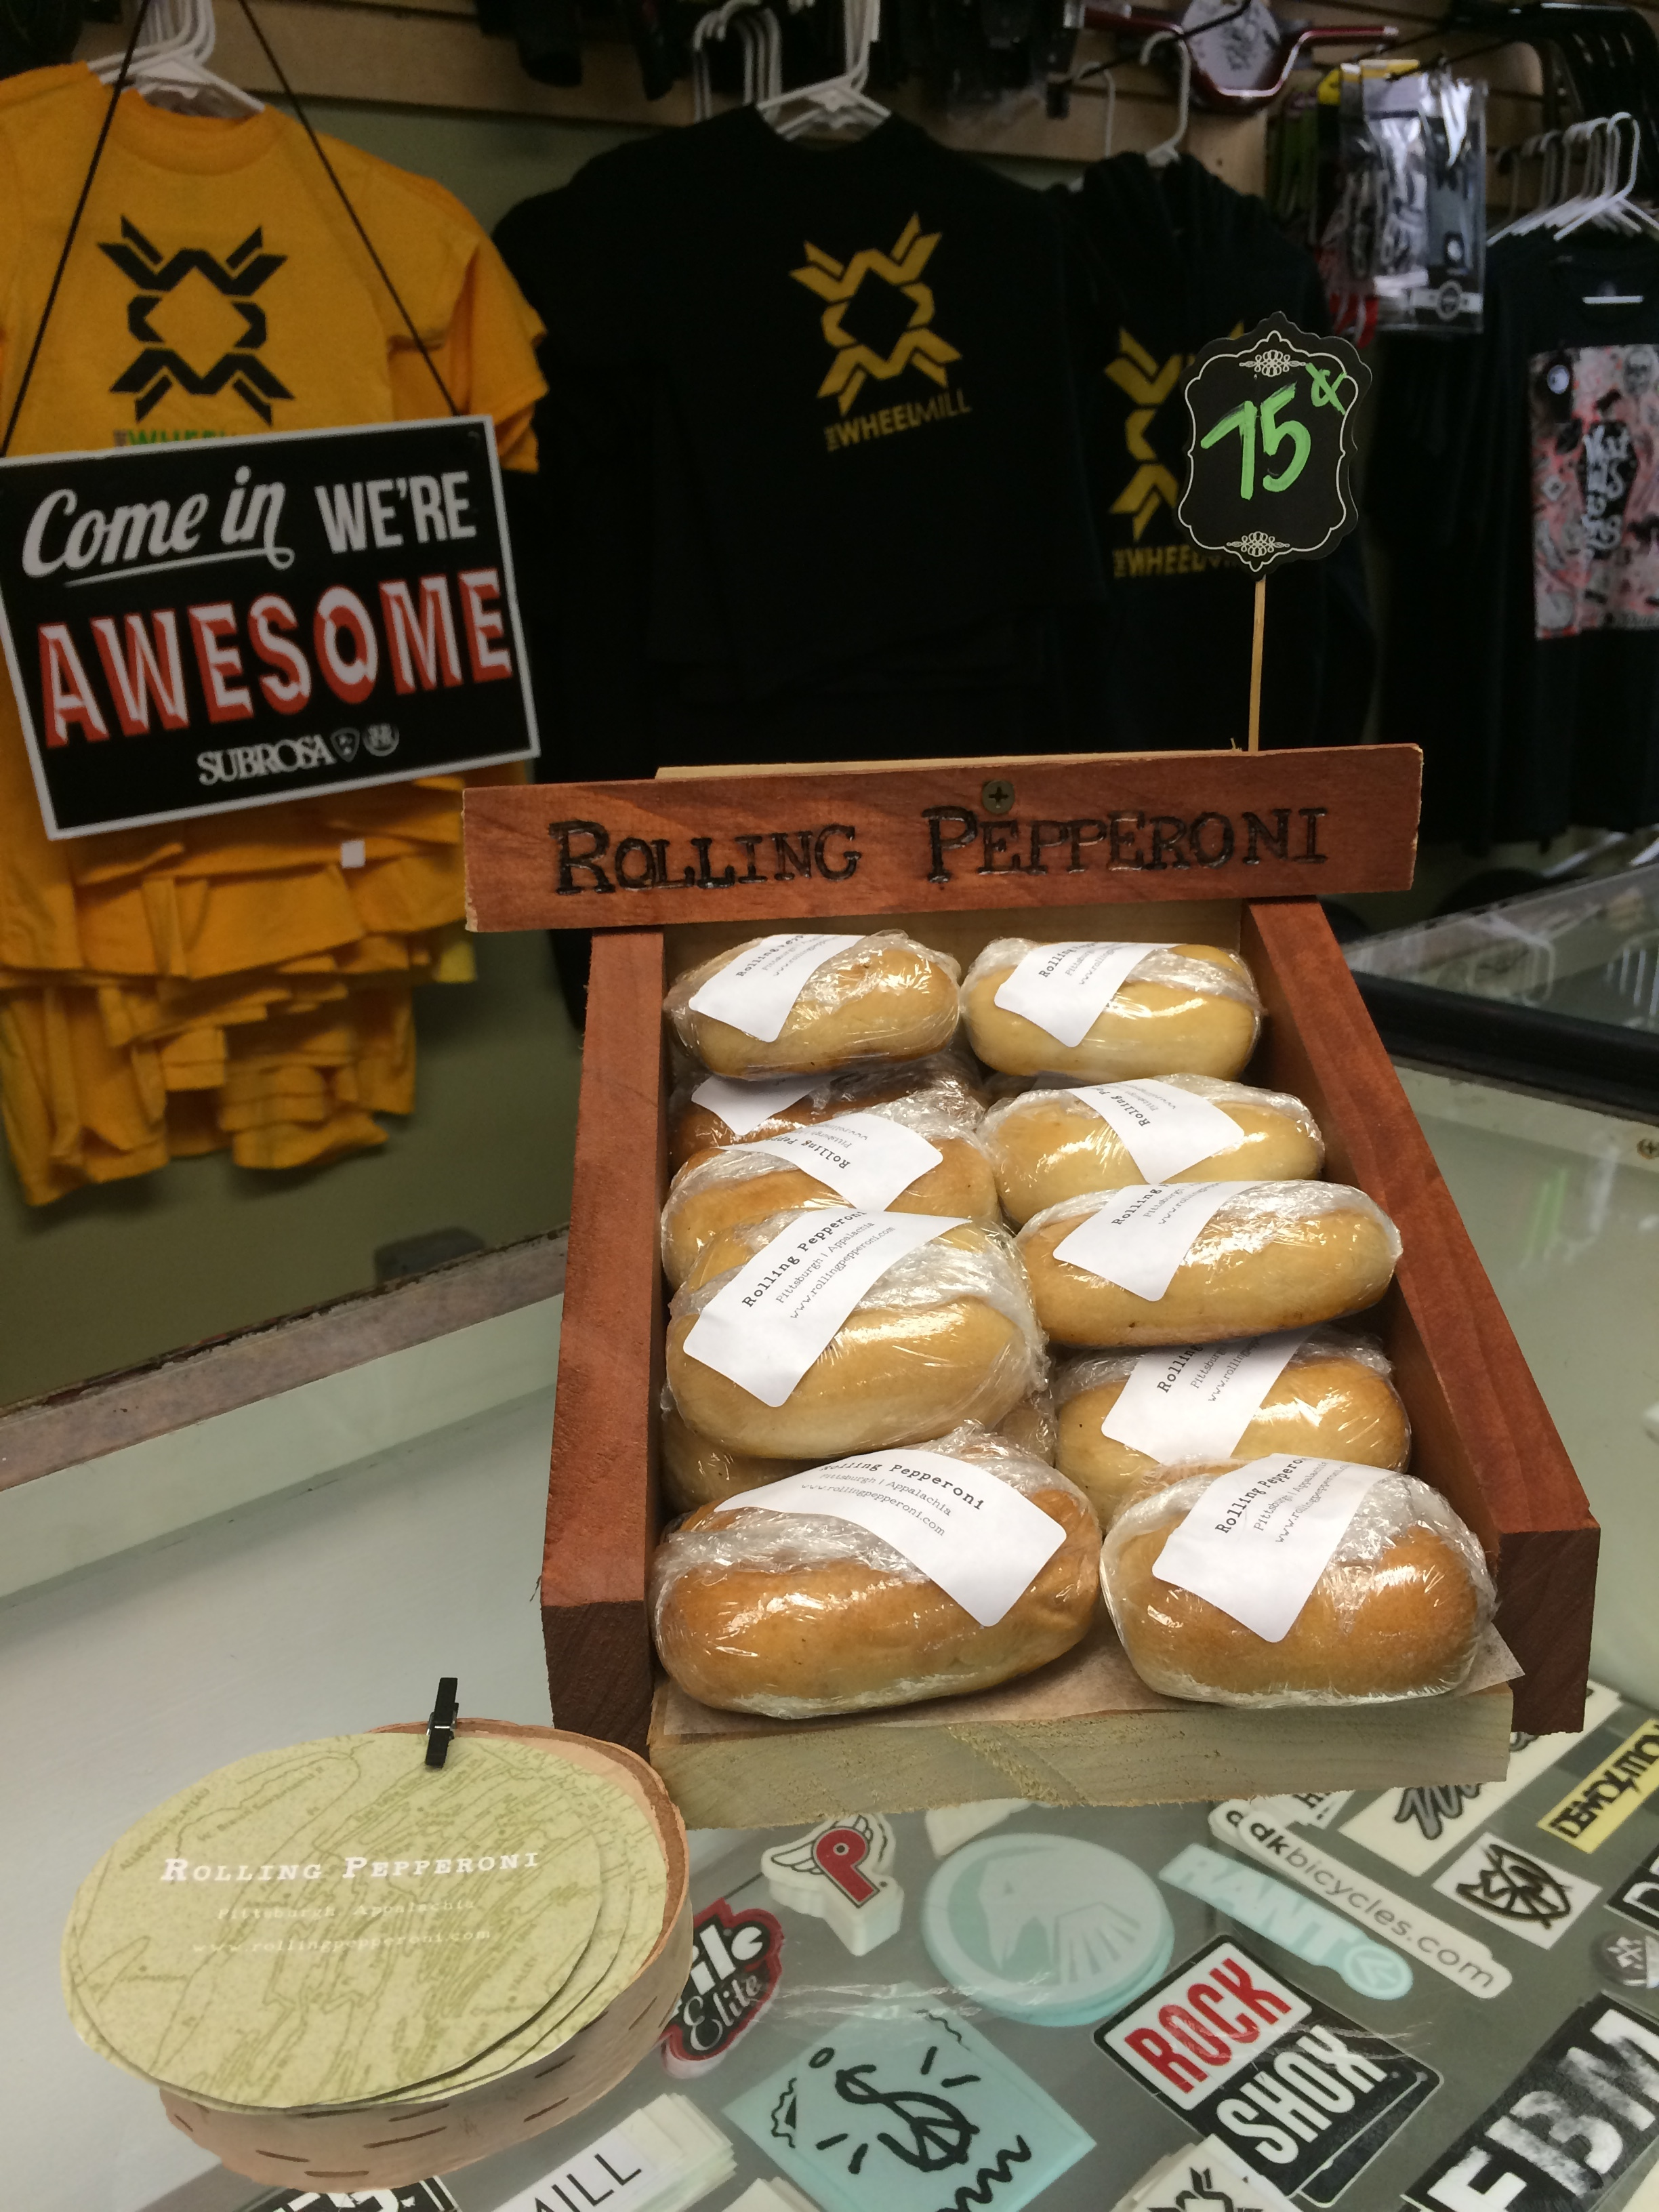 Rolling Pepperoni's first time selling pepperoni rolls at TWM for $0.75! Also, first time owner Katt Schuler used a hand saw to make this display, which is still in use at Tom Fridays in Brighton Heights.